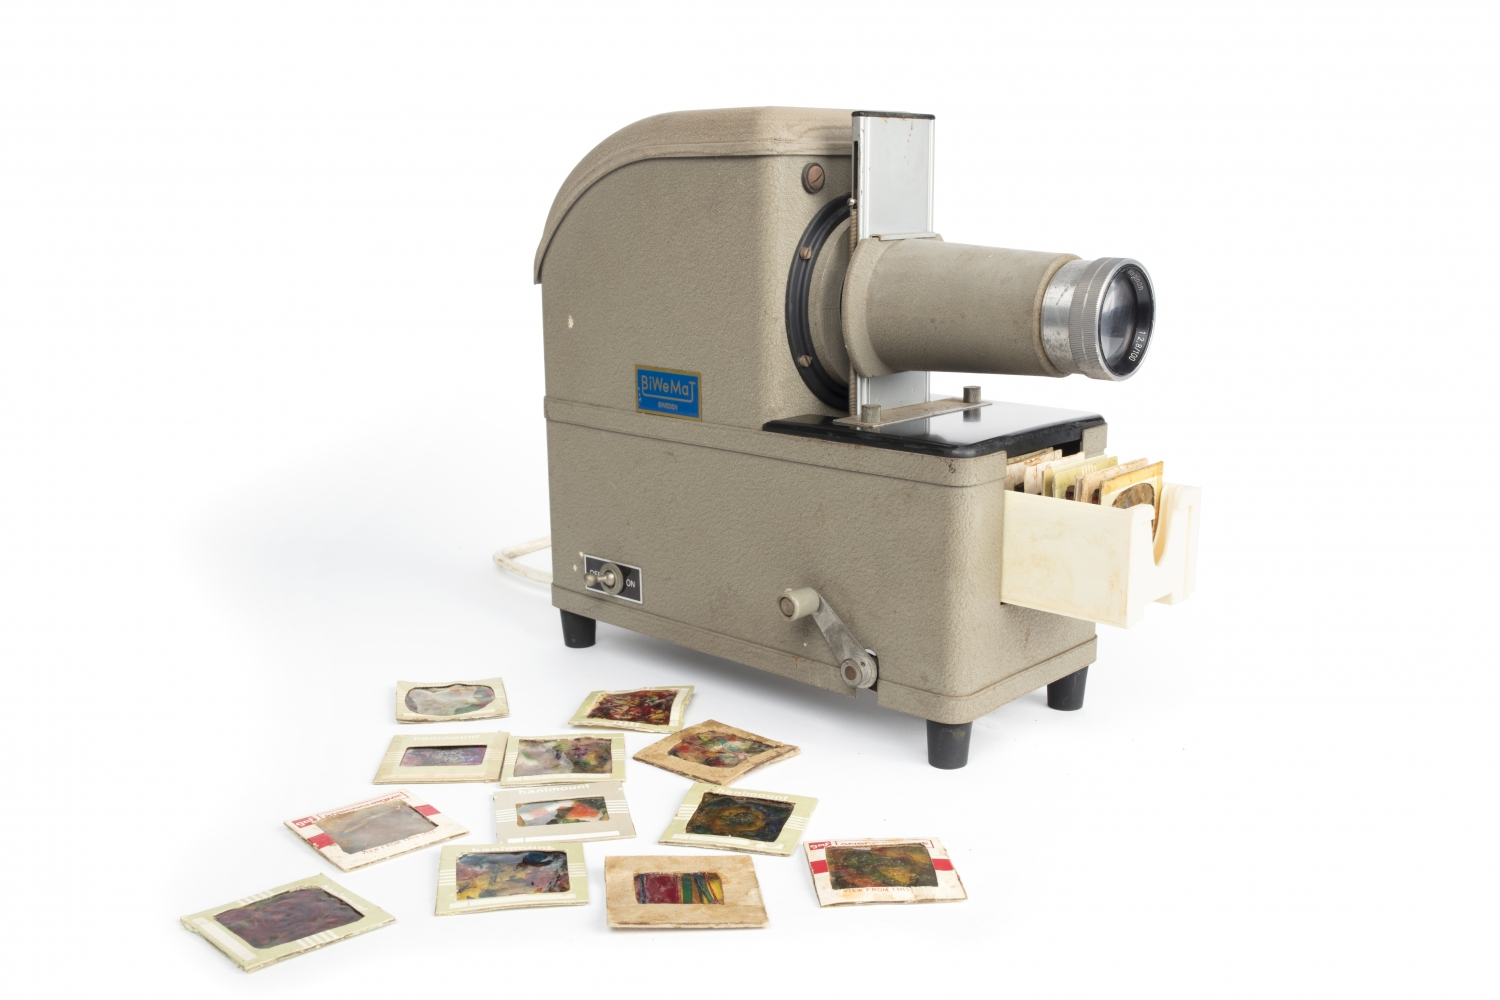 Slide projector with slides and slide mount